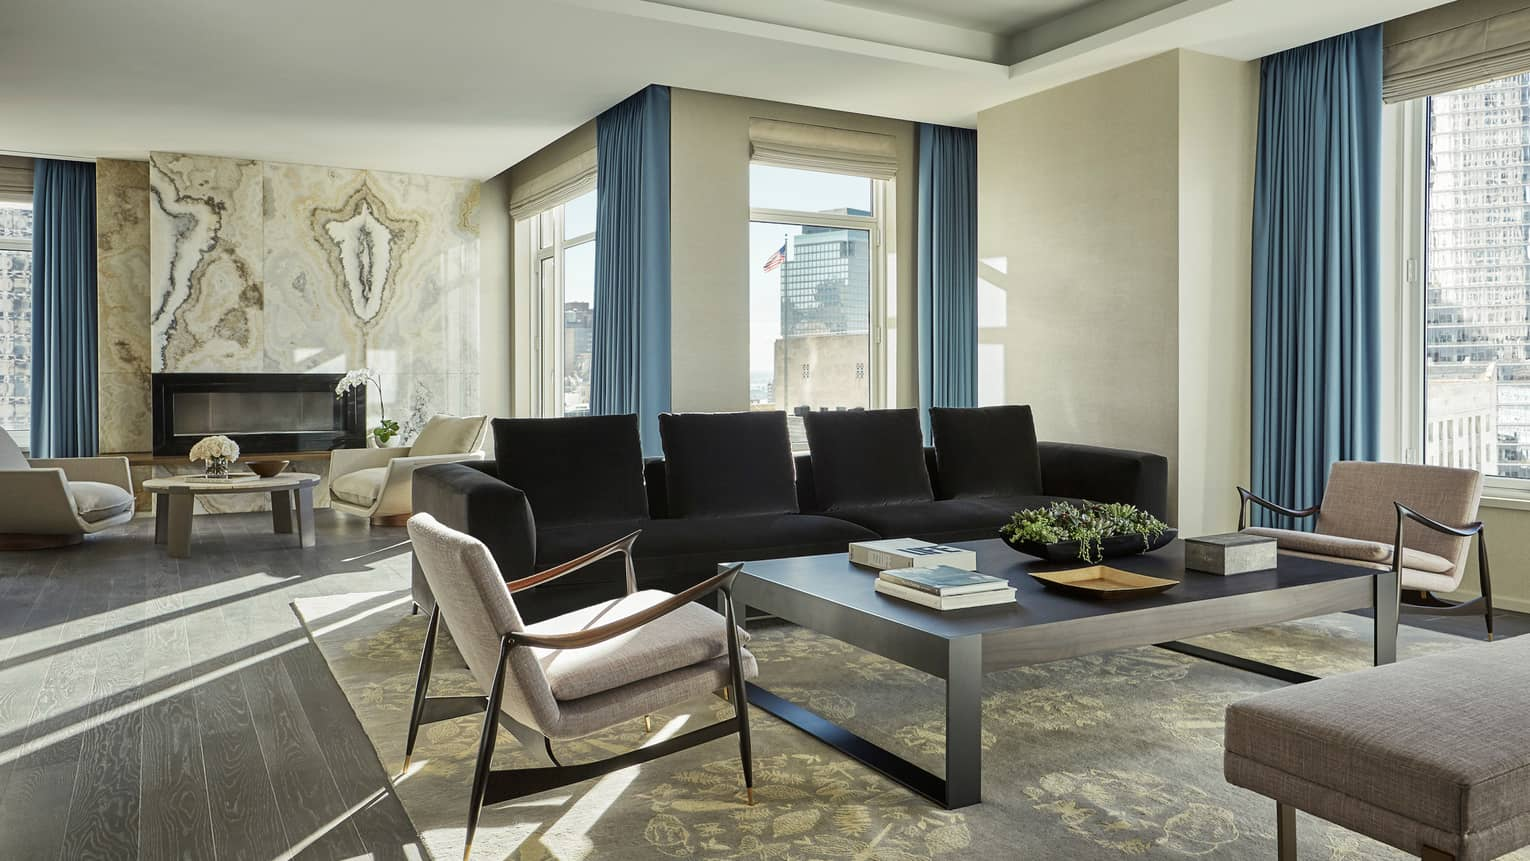 Royal Suite modern mid-century style armchairs, long black sofa, stonecut tile wall, windows